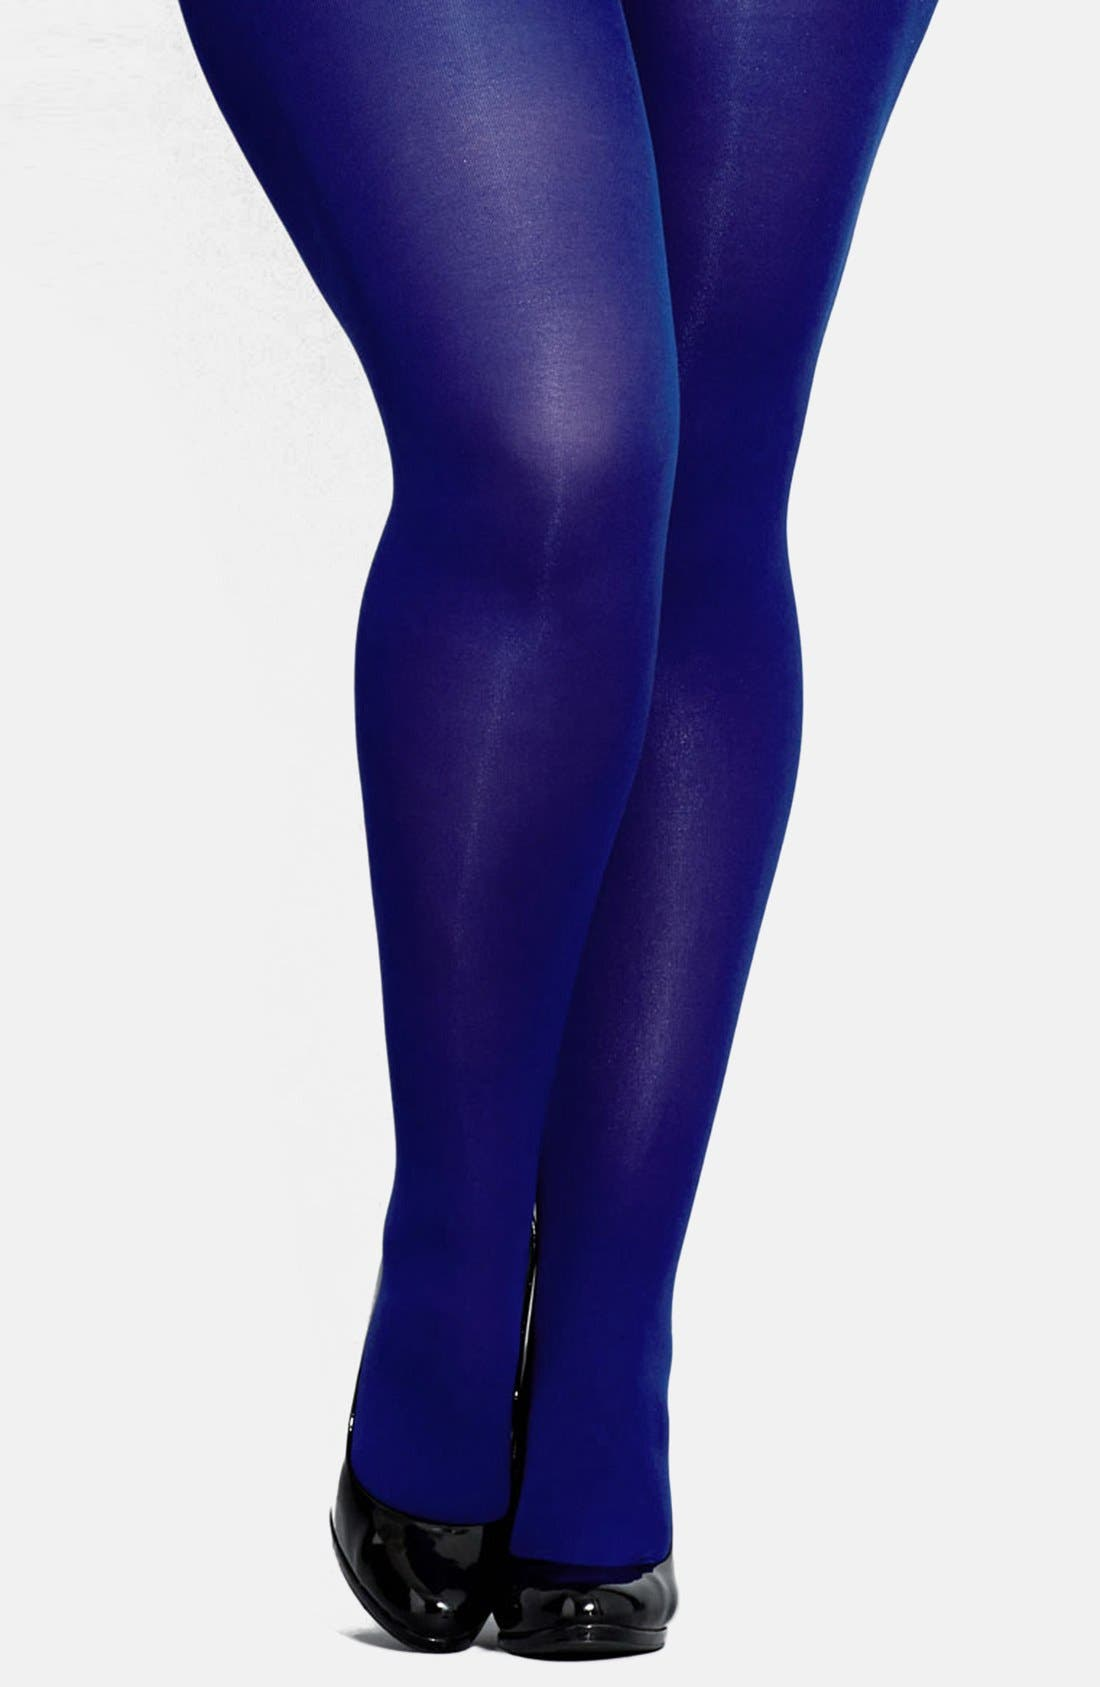 Alternate Image 1 Selected - City Chic Opaque Tights (Plus Size)